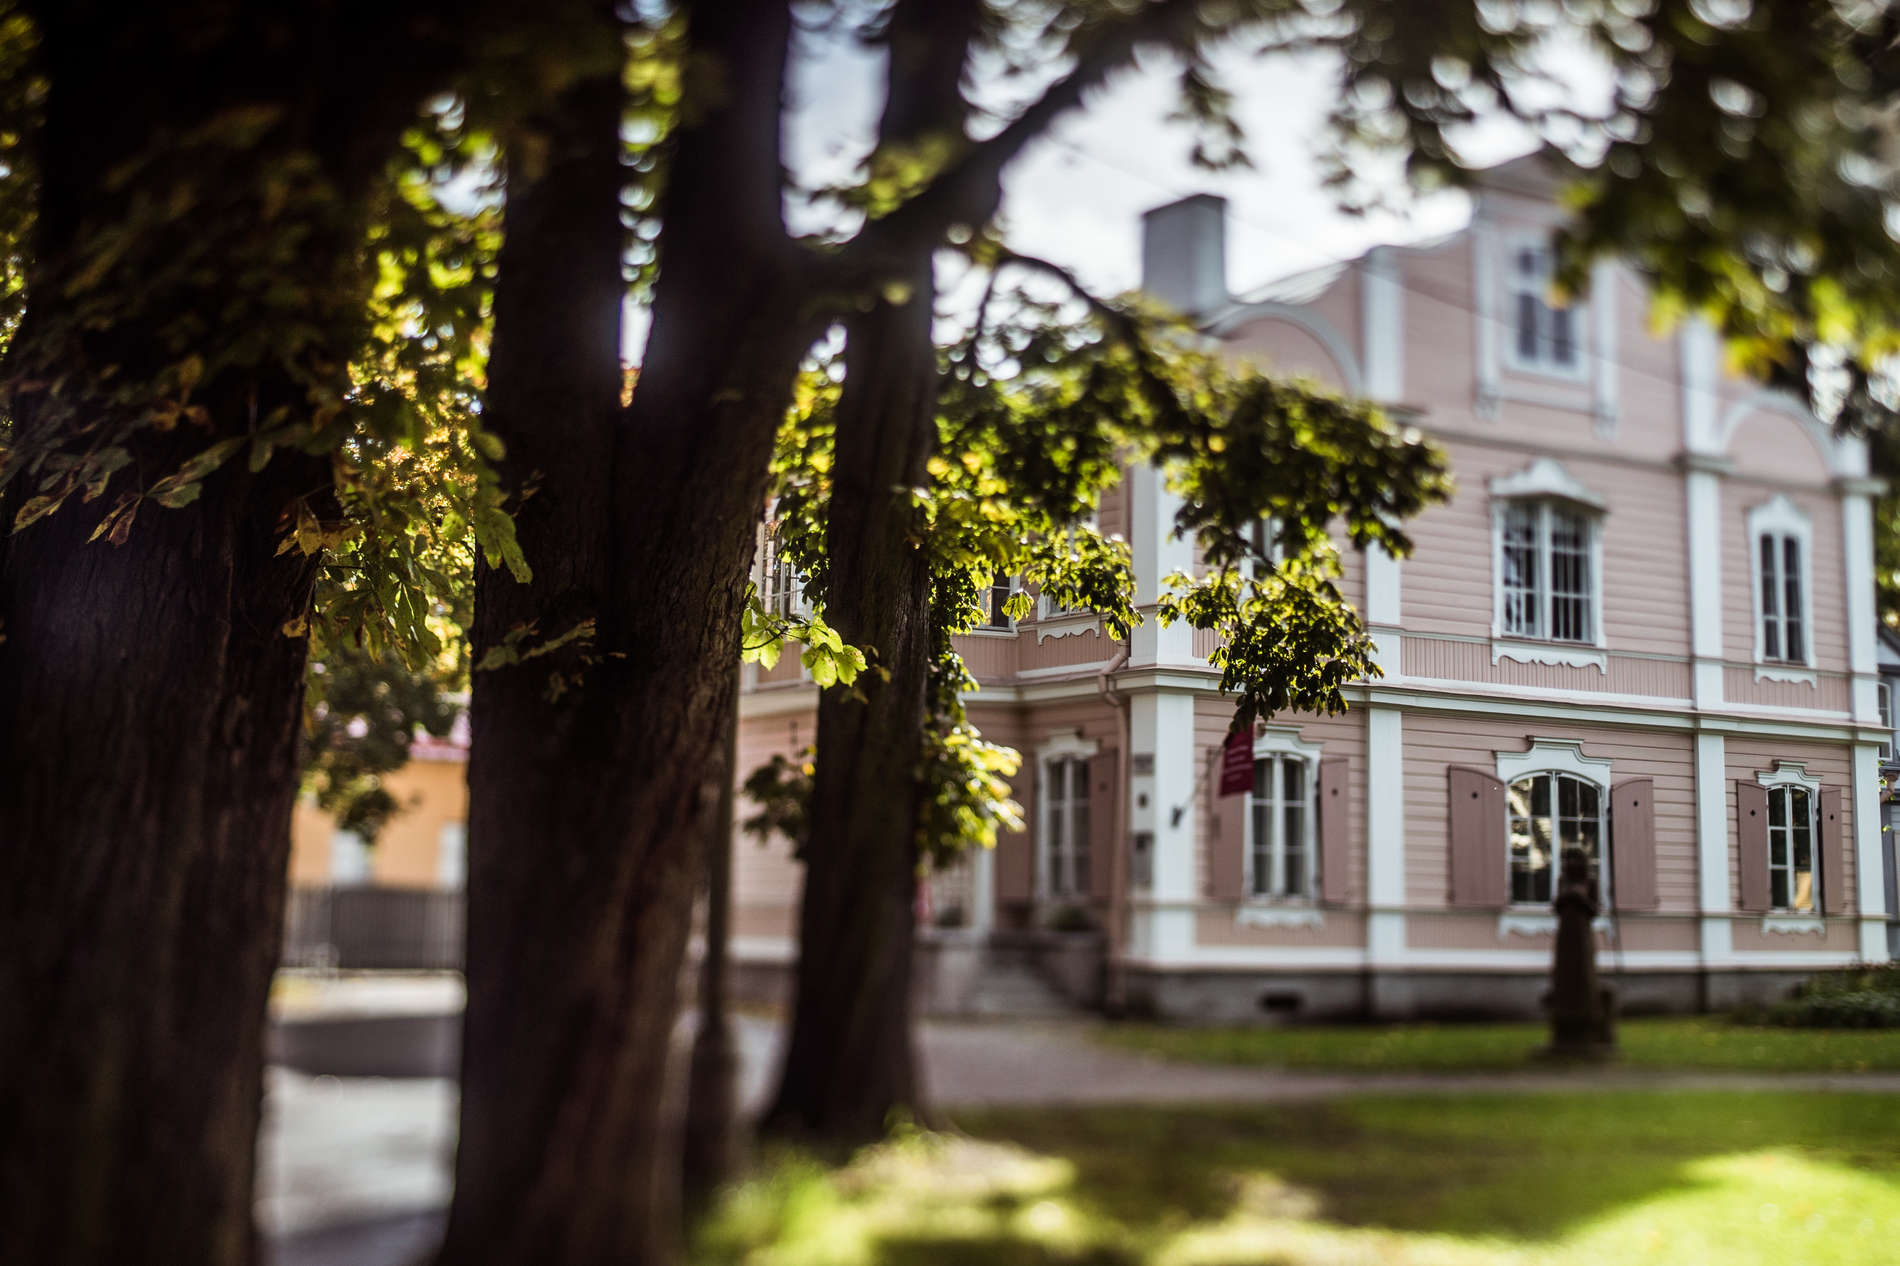 External view of the Vilde´s House Museum in Tallinn, Estonia.